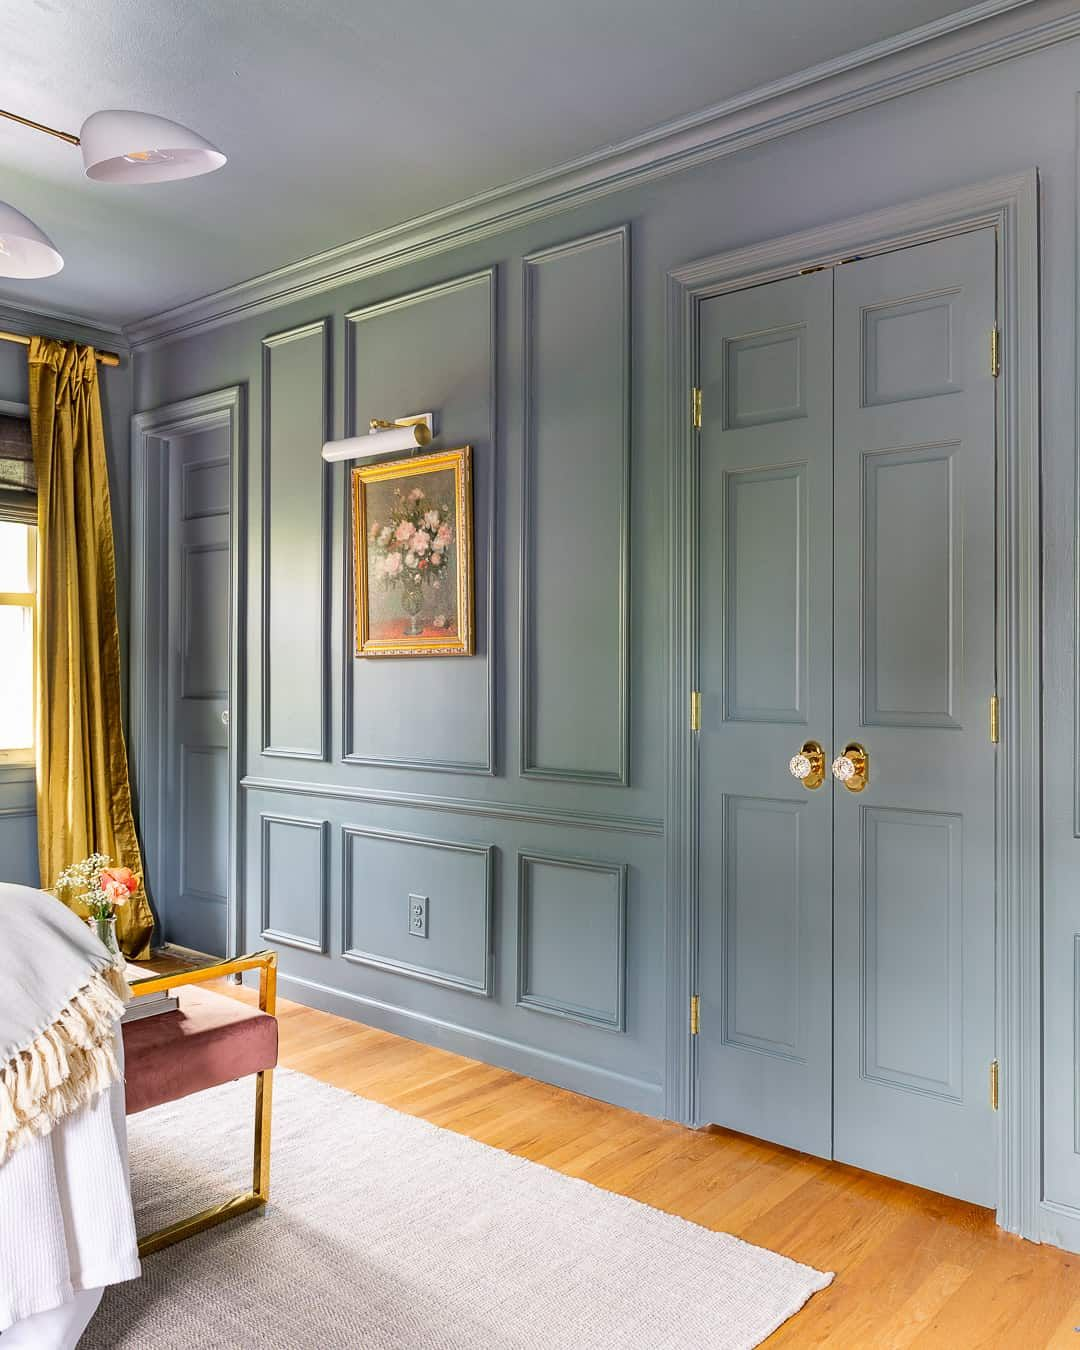 Painted panelled bedroom